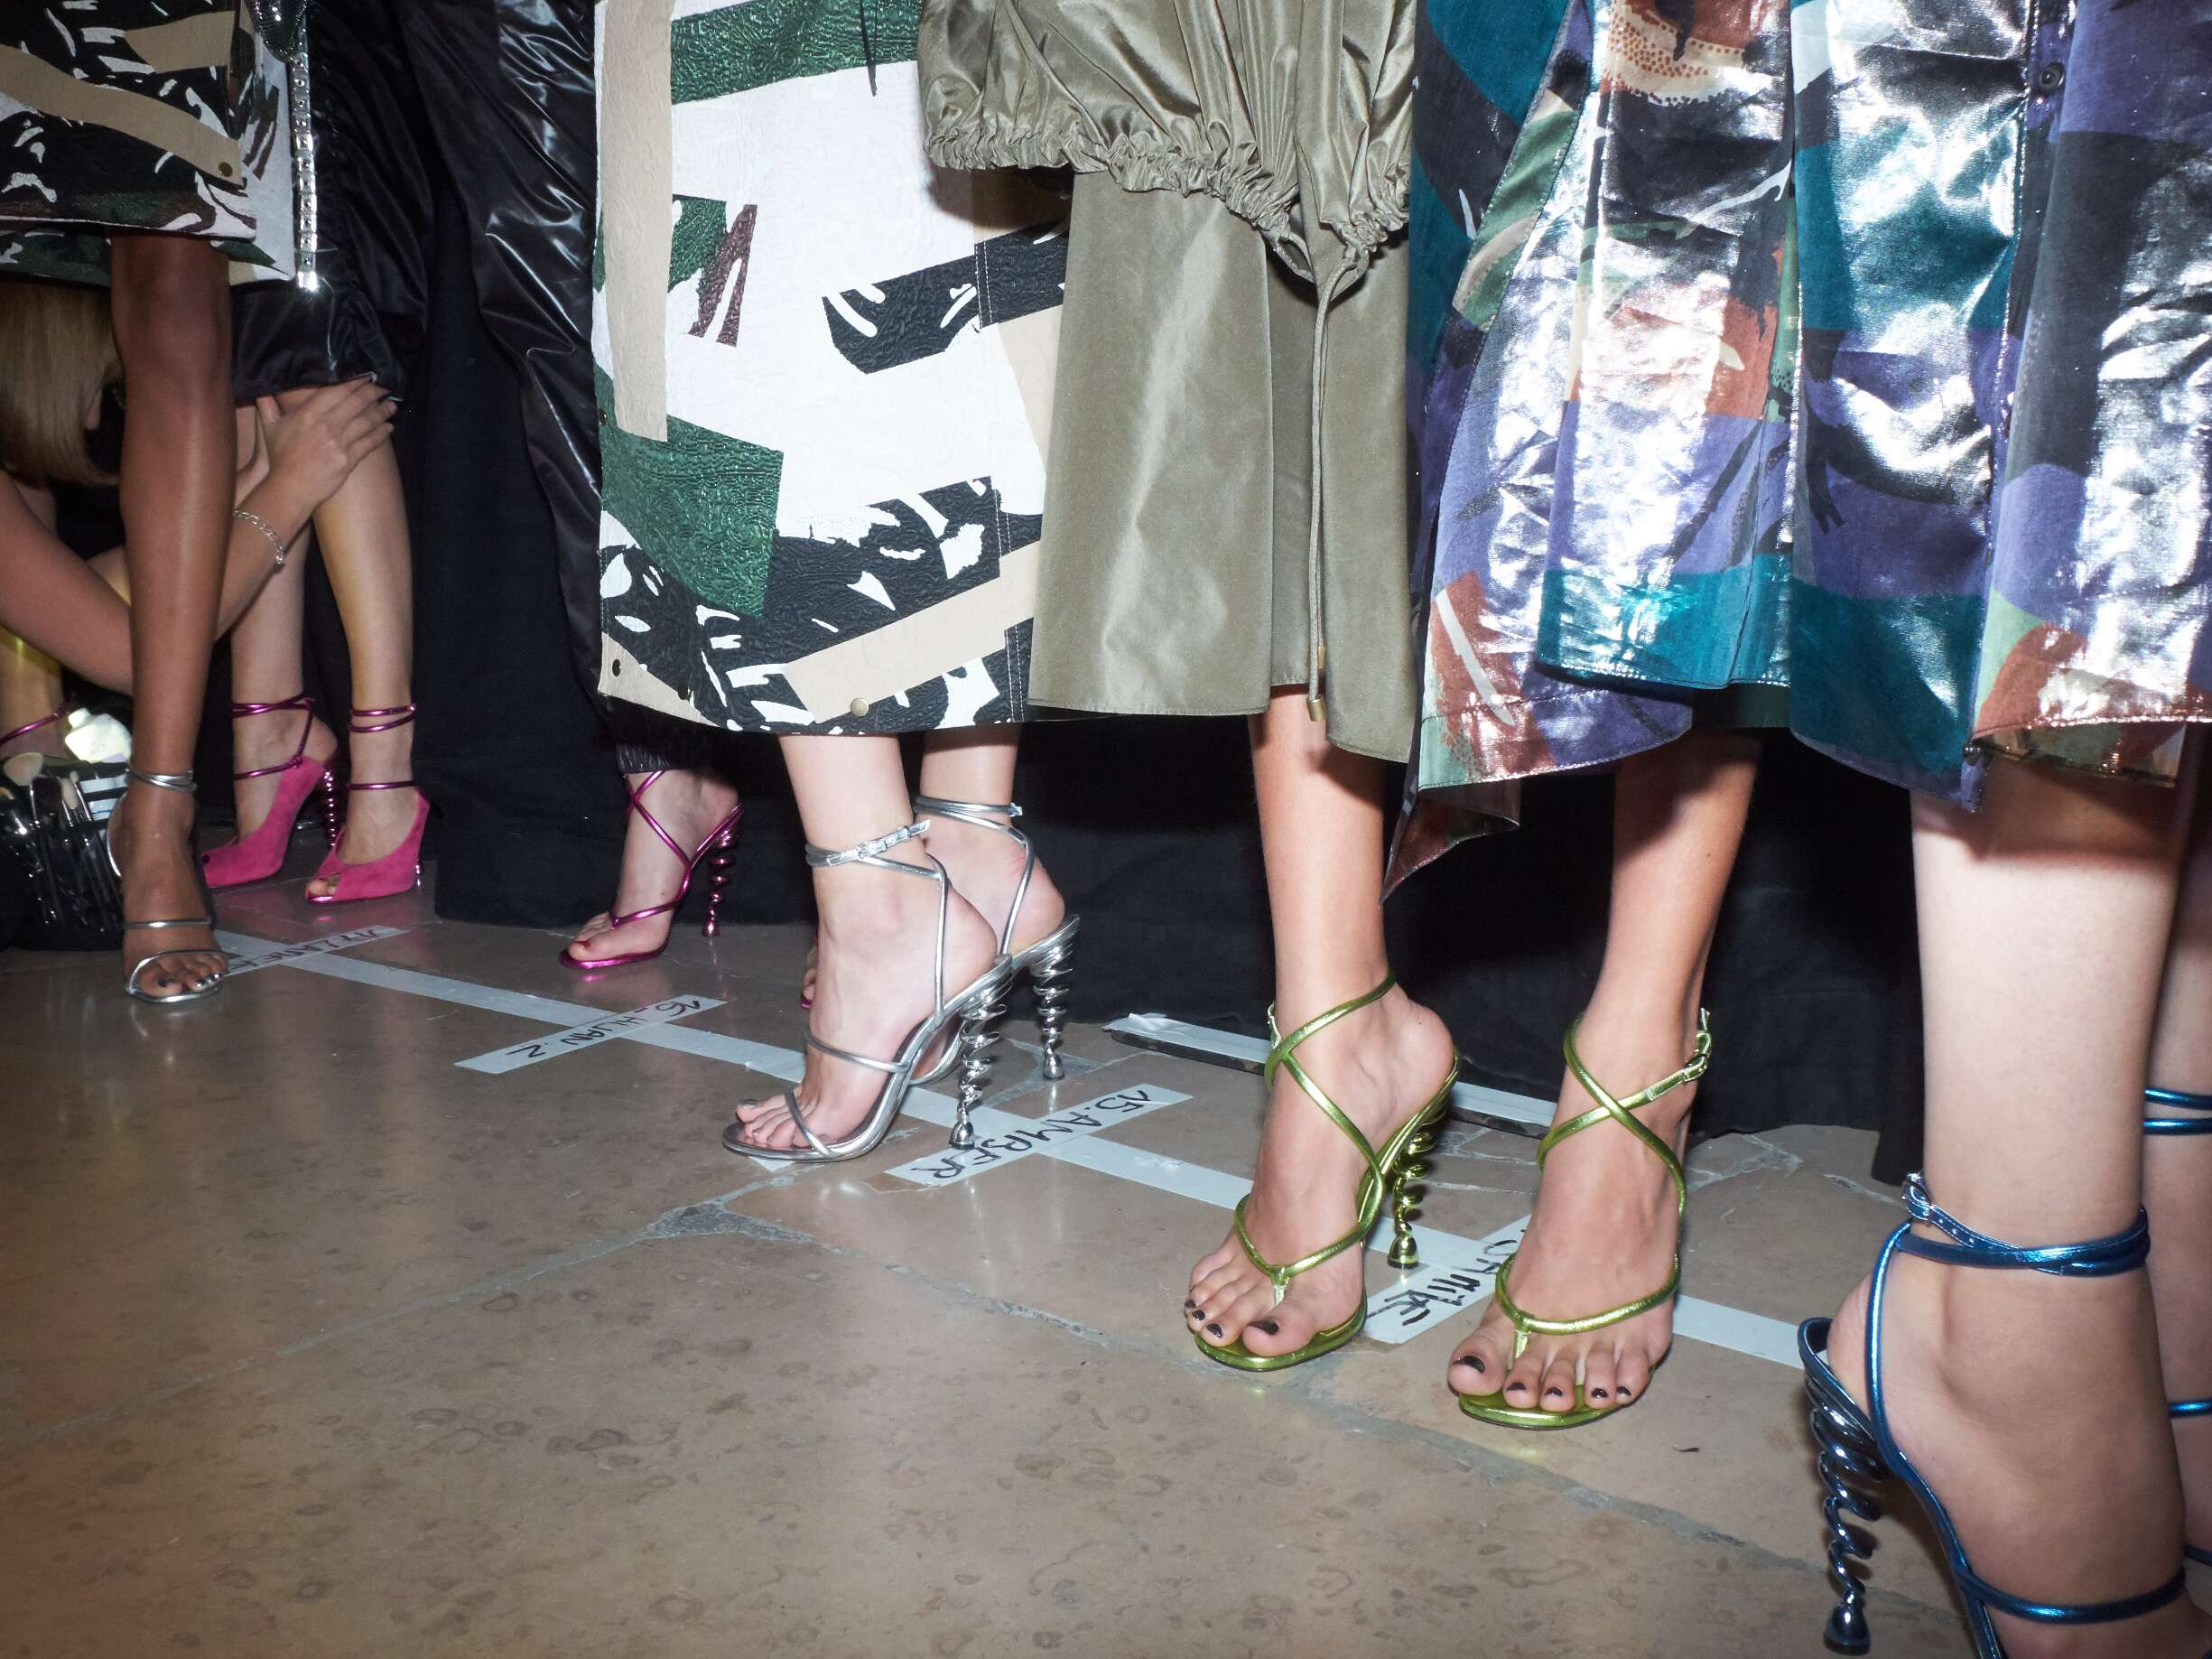 http://www.theskinnybeep.com/wp-content/uploads/2016/10/Fashion-Models-Kenzo-Womenswear-Backstage.jpg